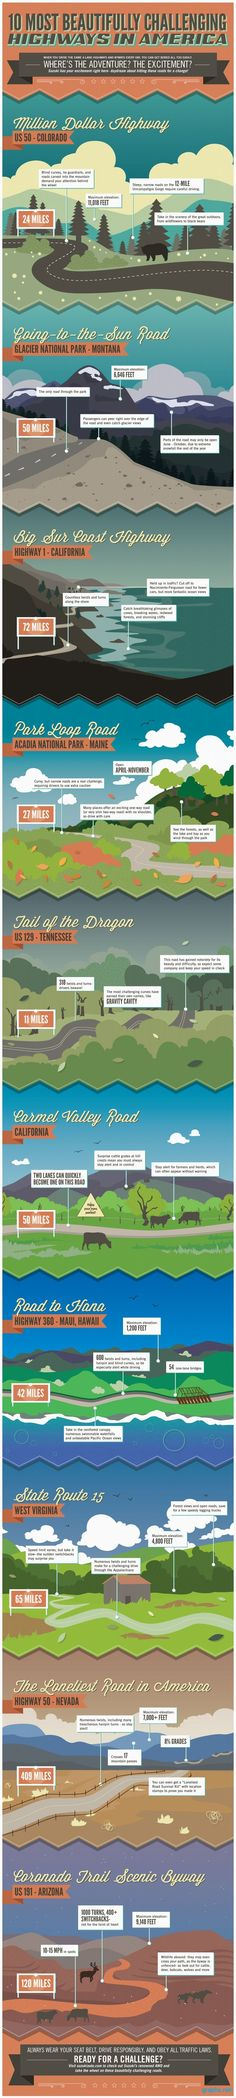 10 Most Beautiful Highways In America #beautiful #highways #infographics